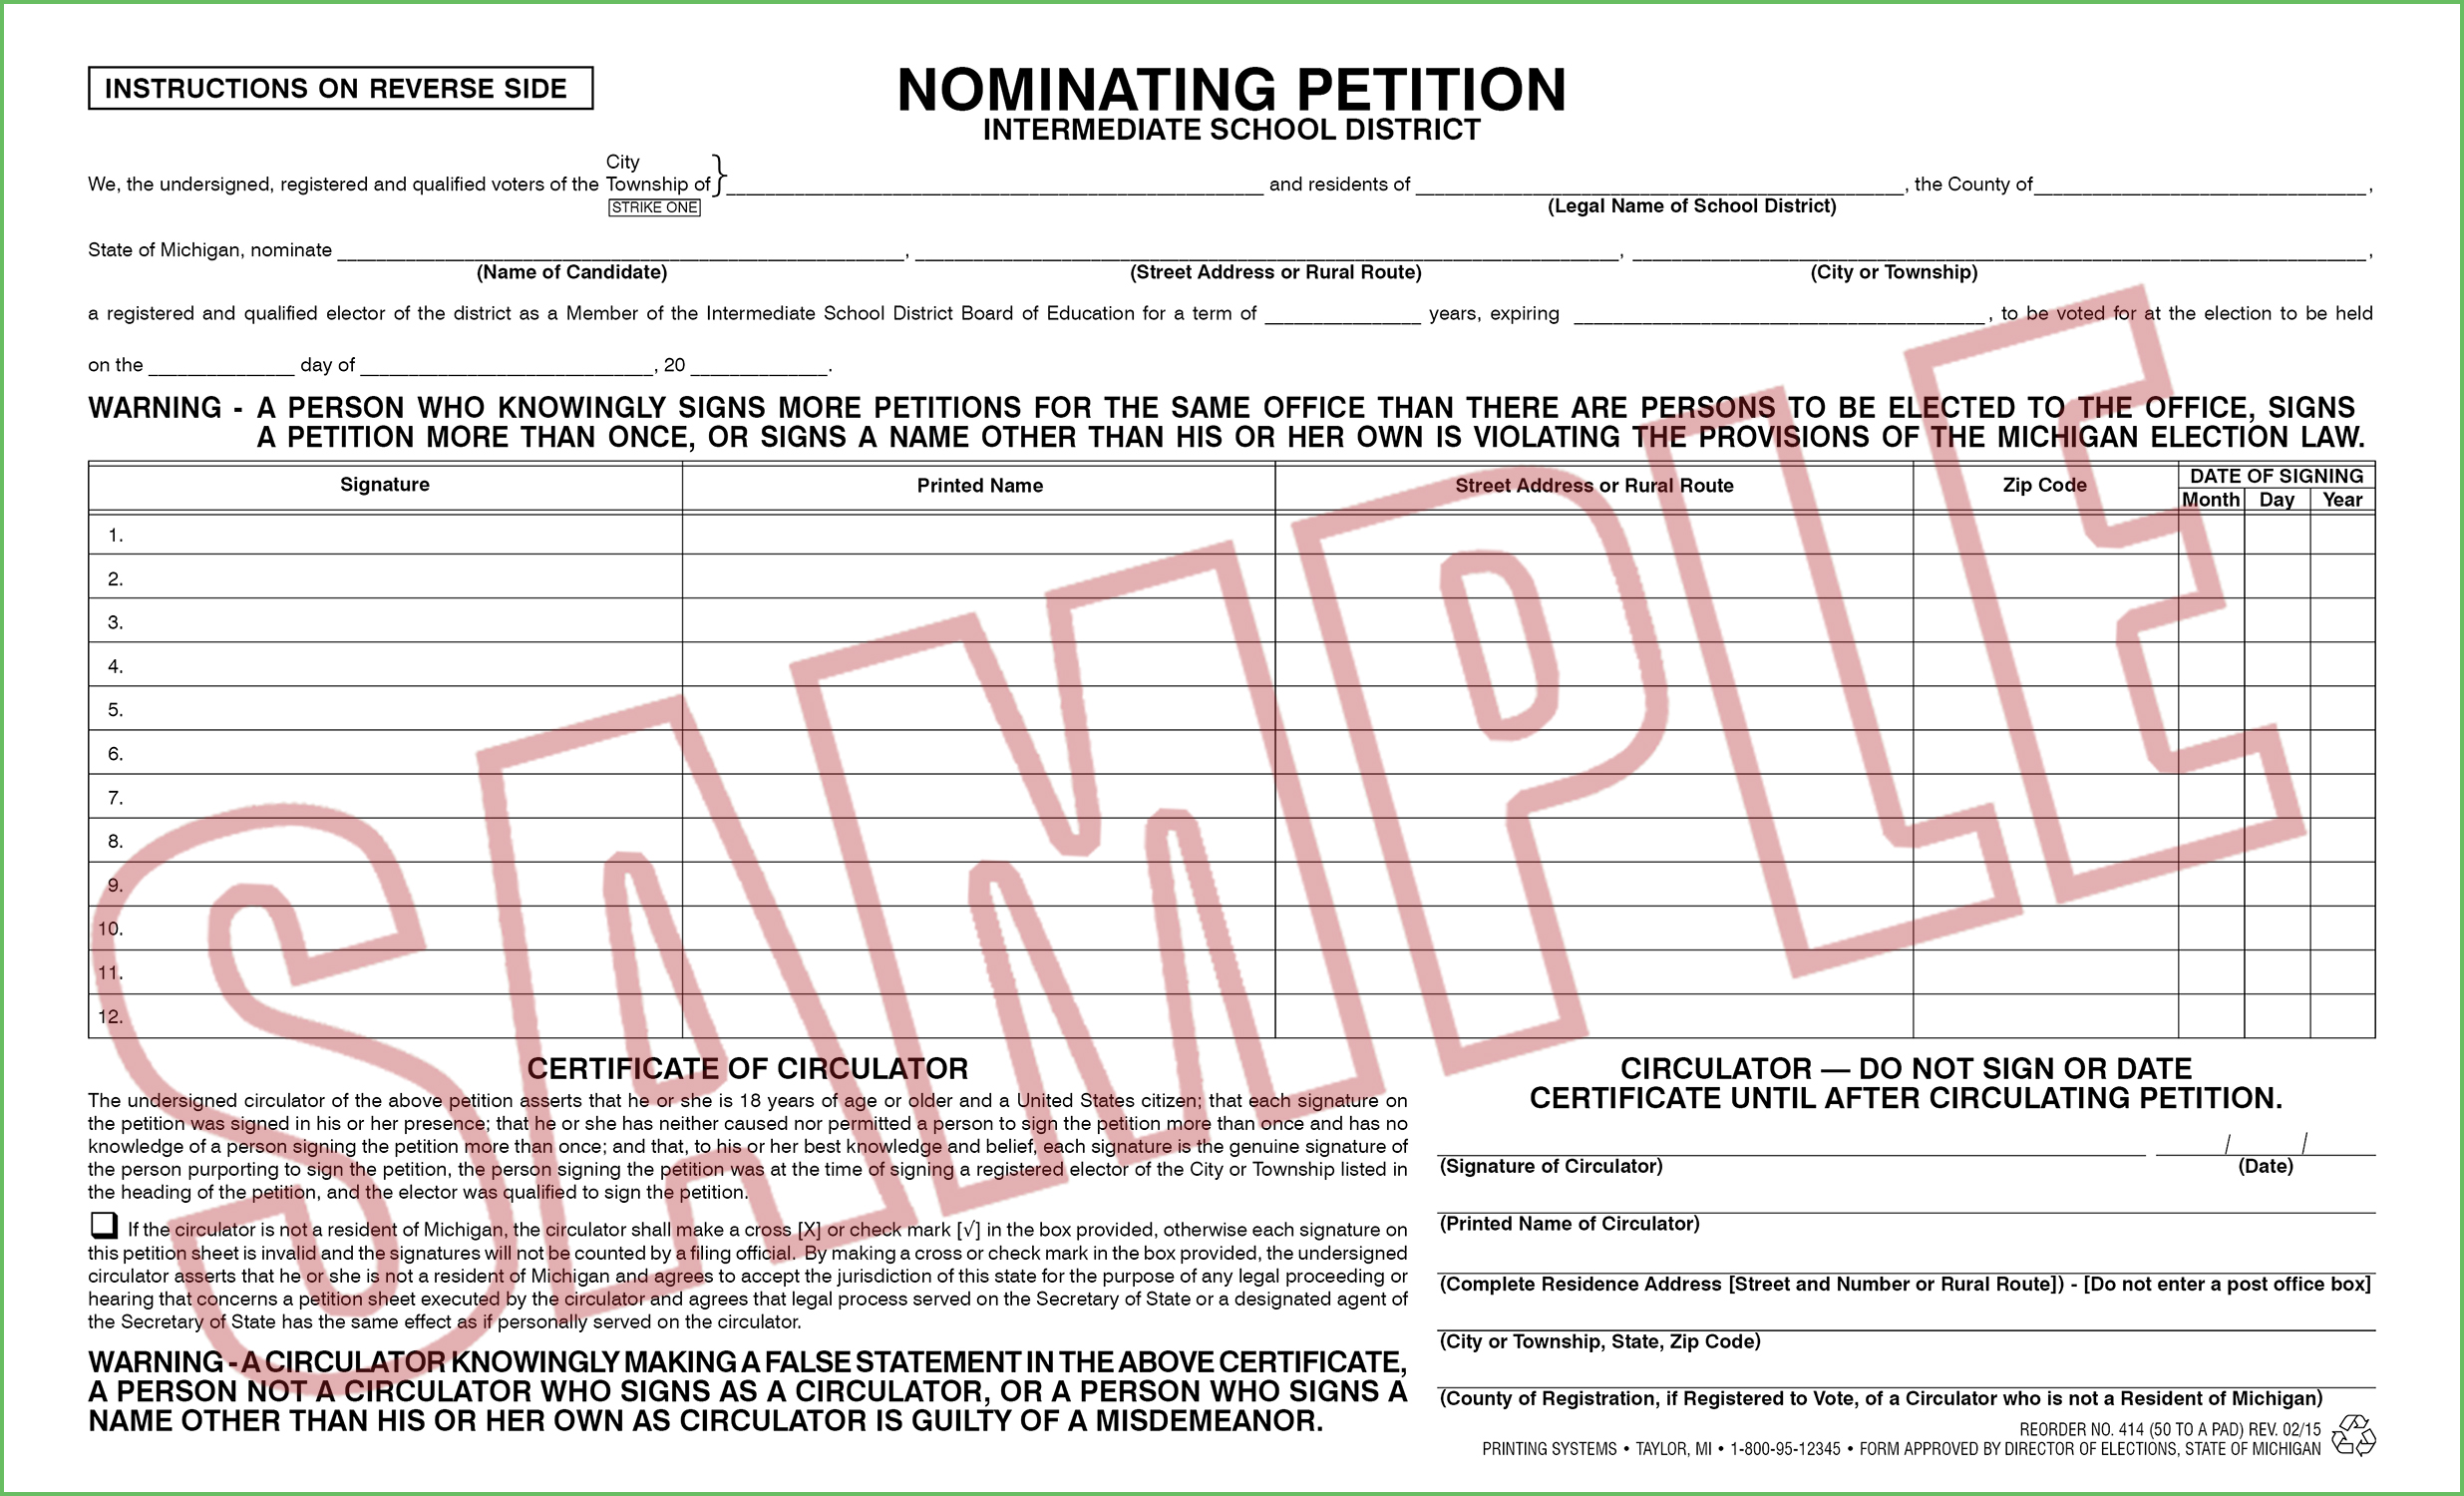 414 Nominating Petition (Intermediate School District) (50 per pad)